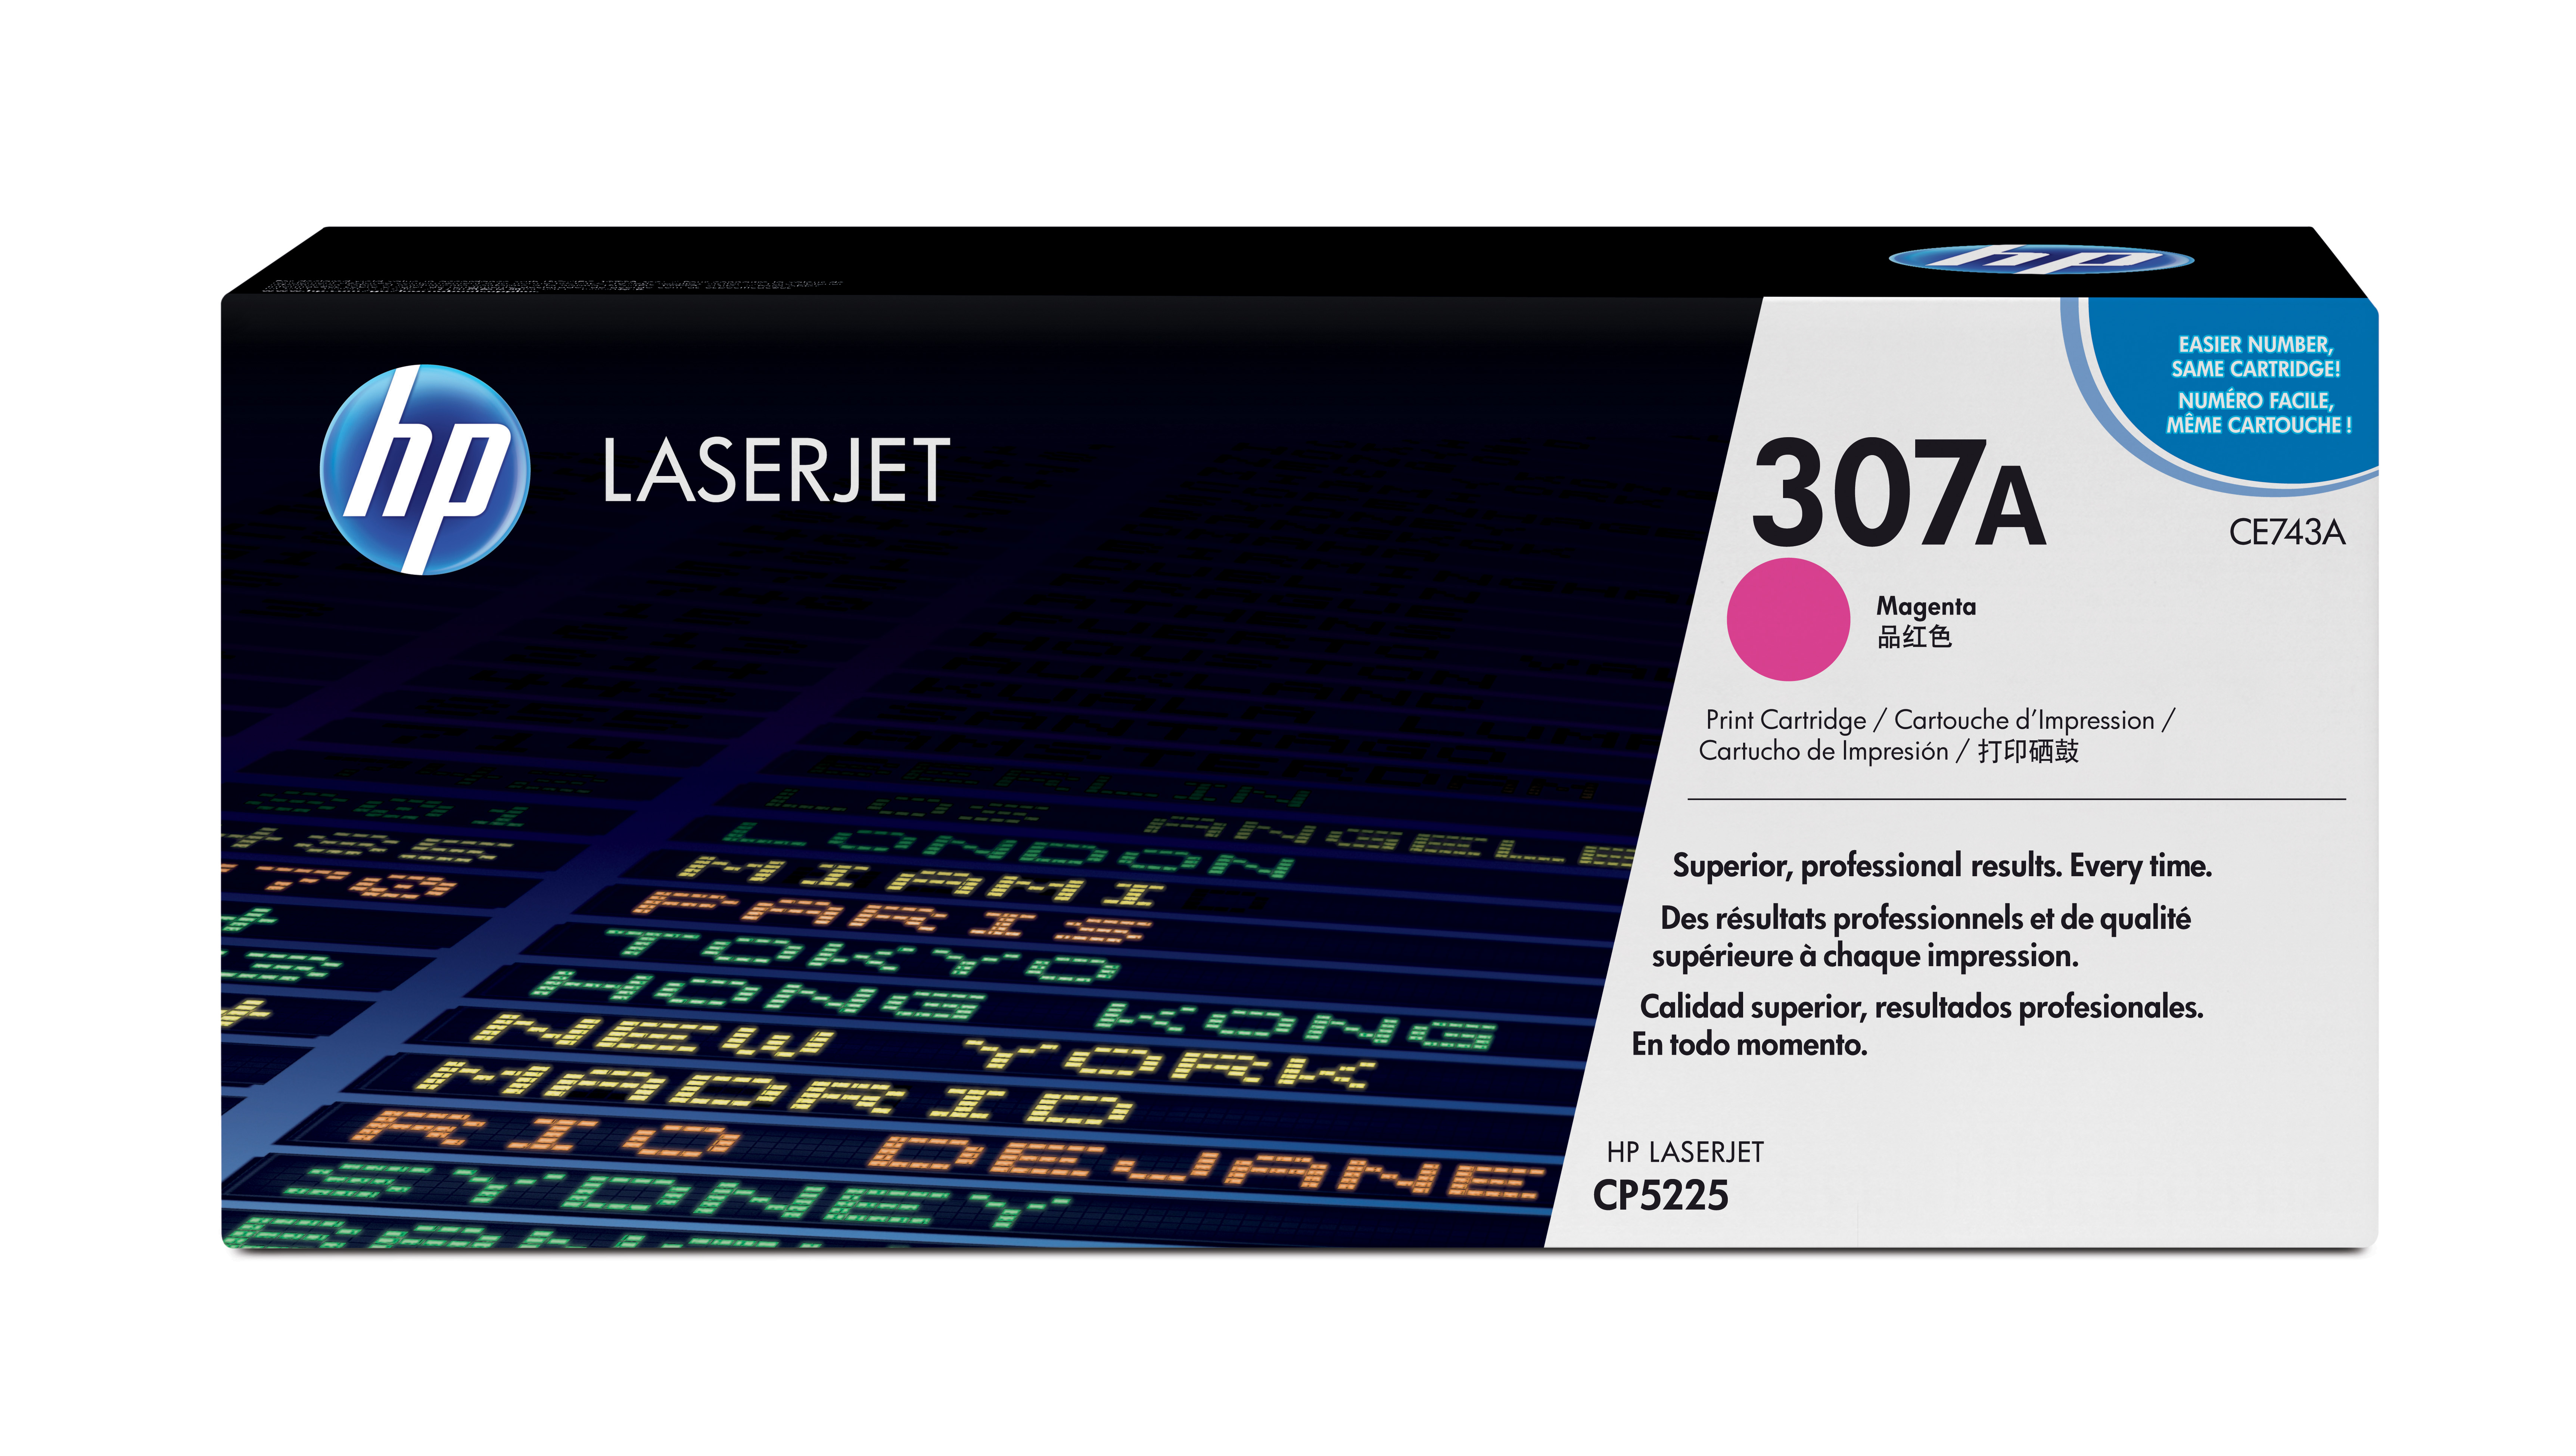 HP 307A Magenta Toner Cartridge CE743A